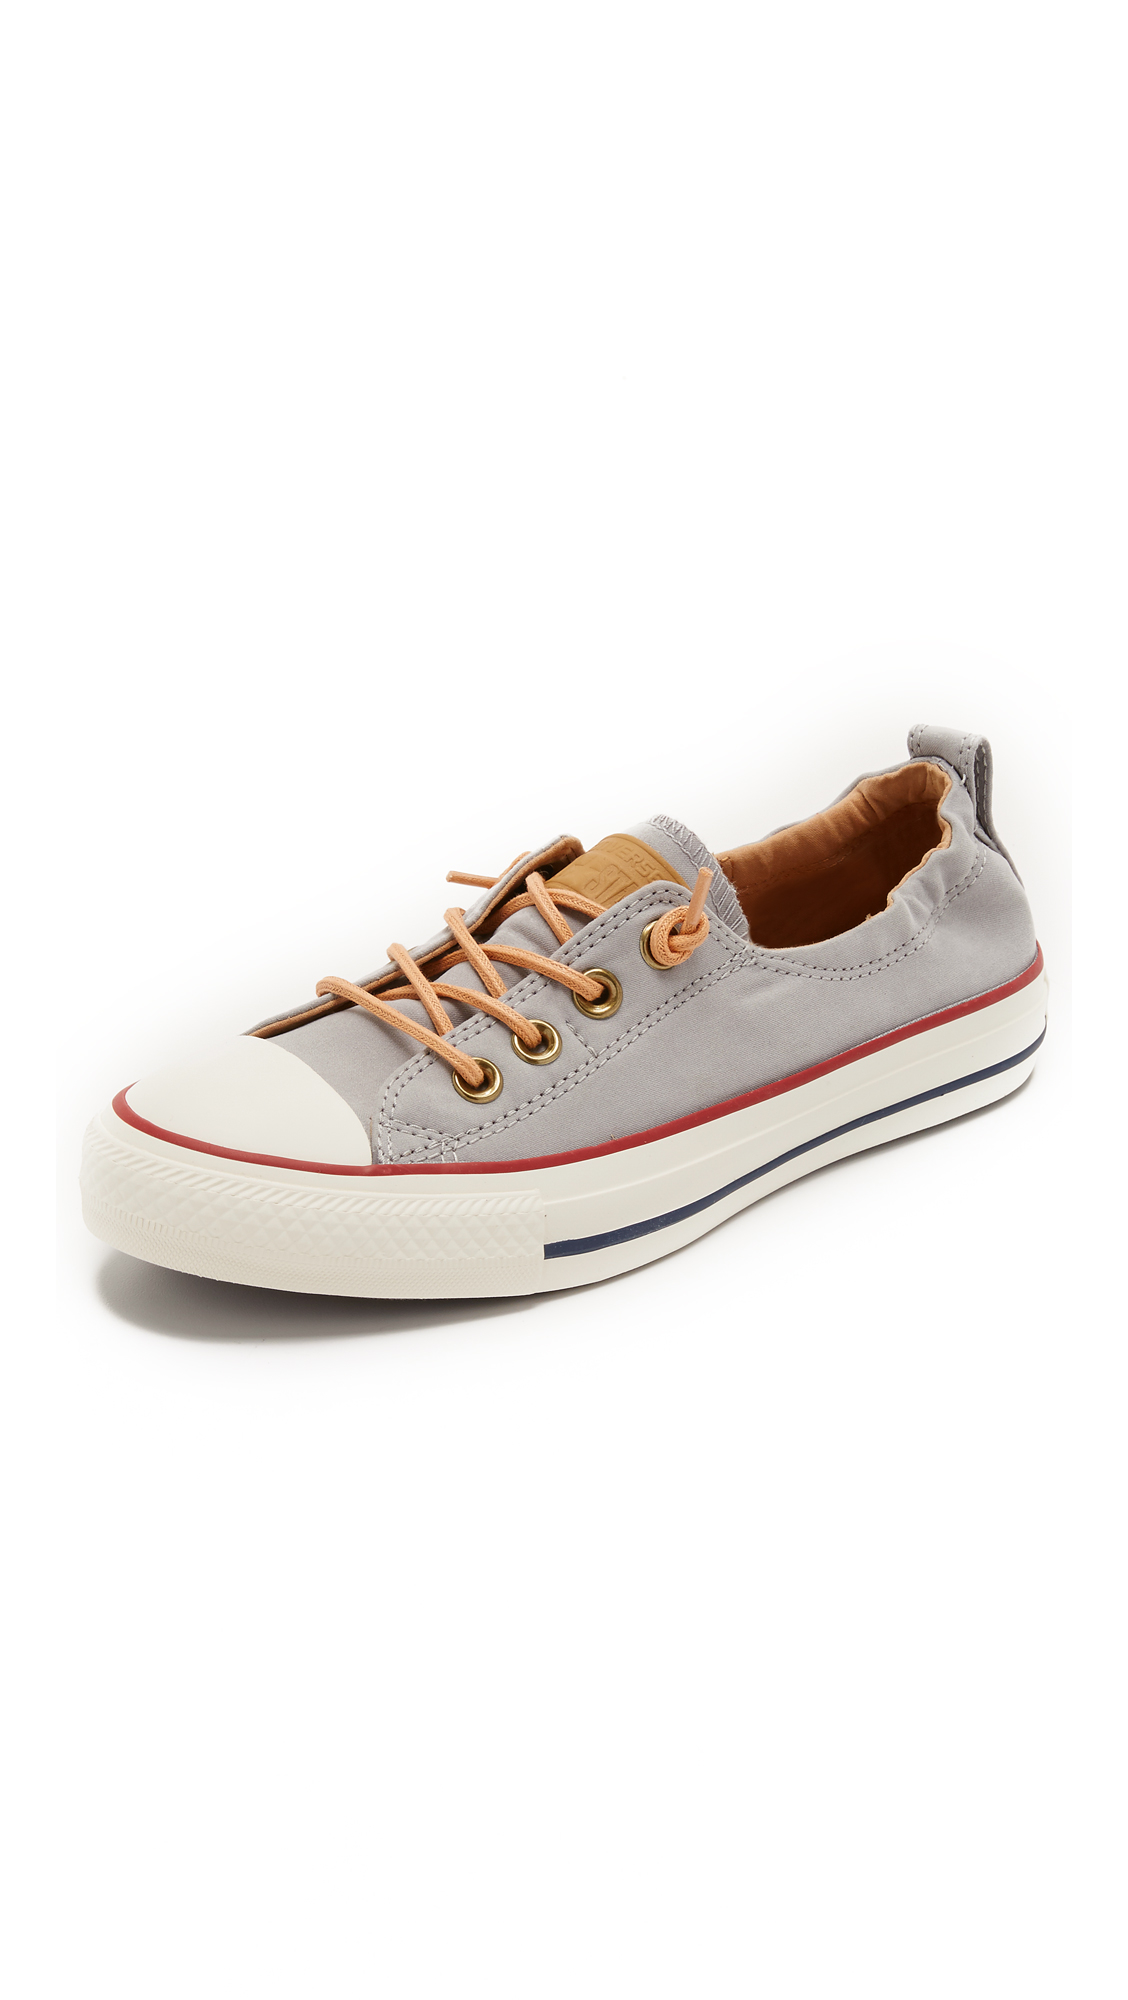 c6c2830d692dbf Gallery. Previously sold at  Shopbop · Women s Converse Chuck Taylor ...